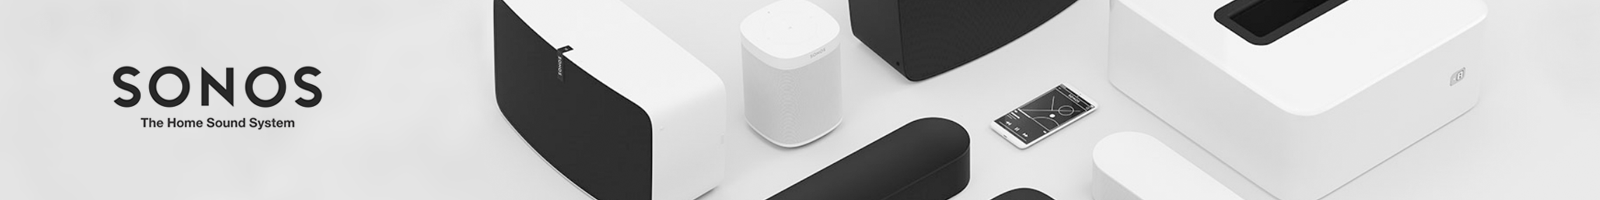 sonos assortiment gamme image